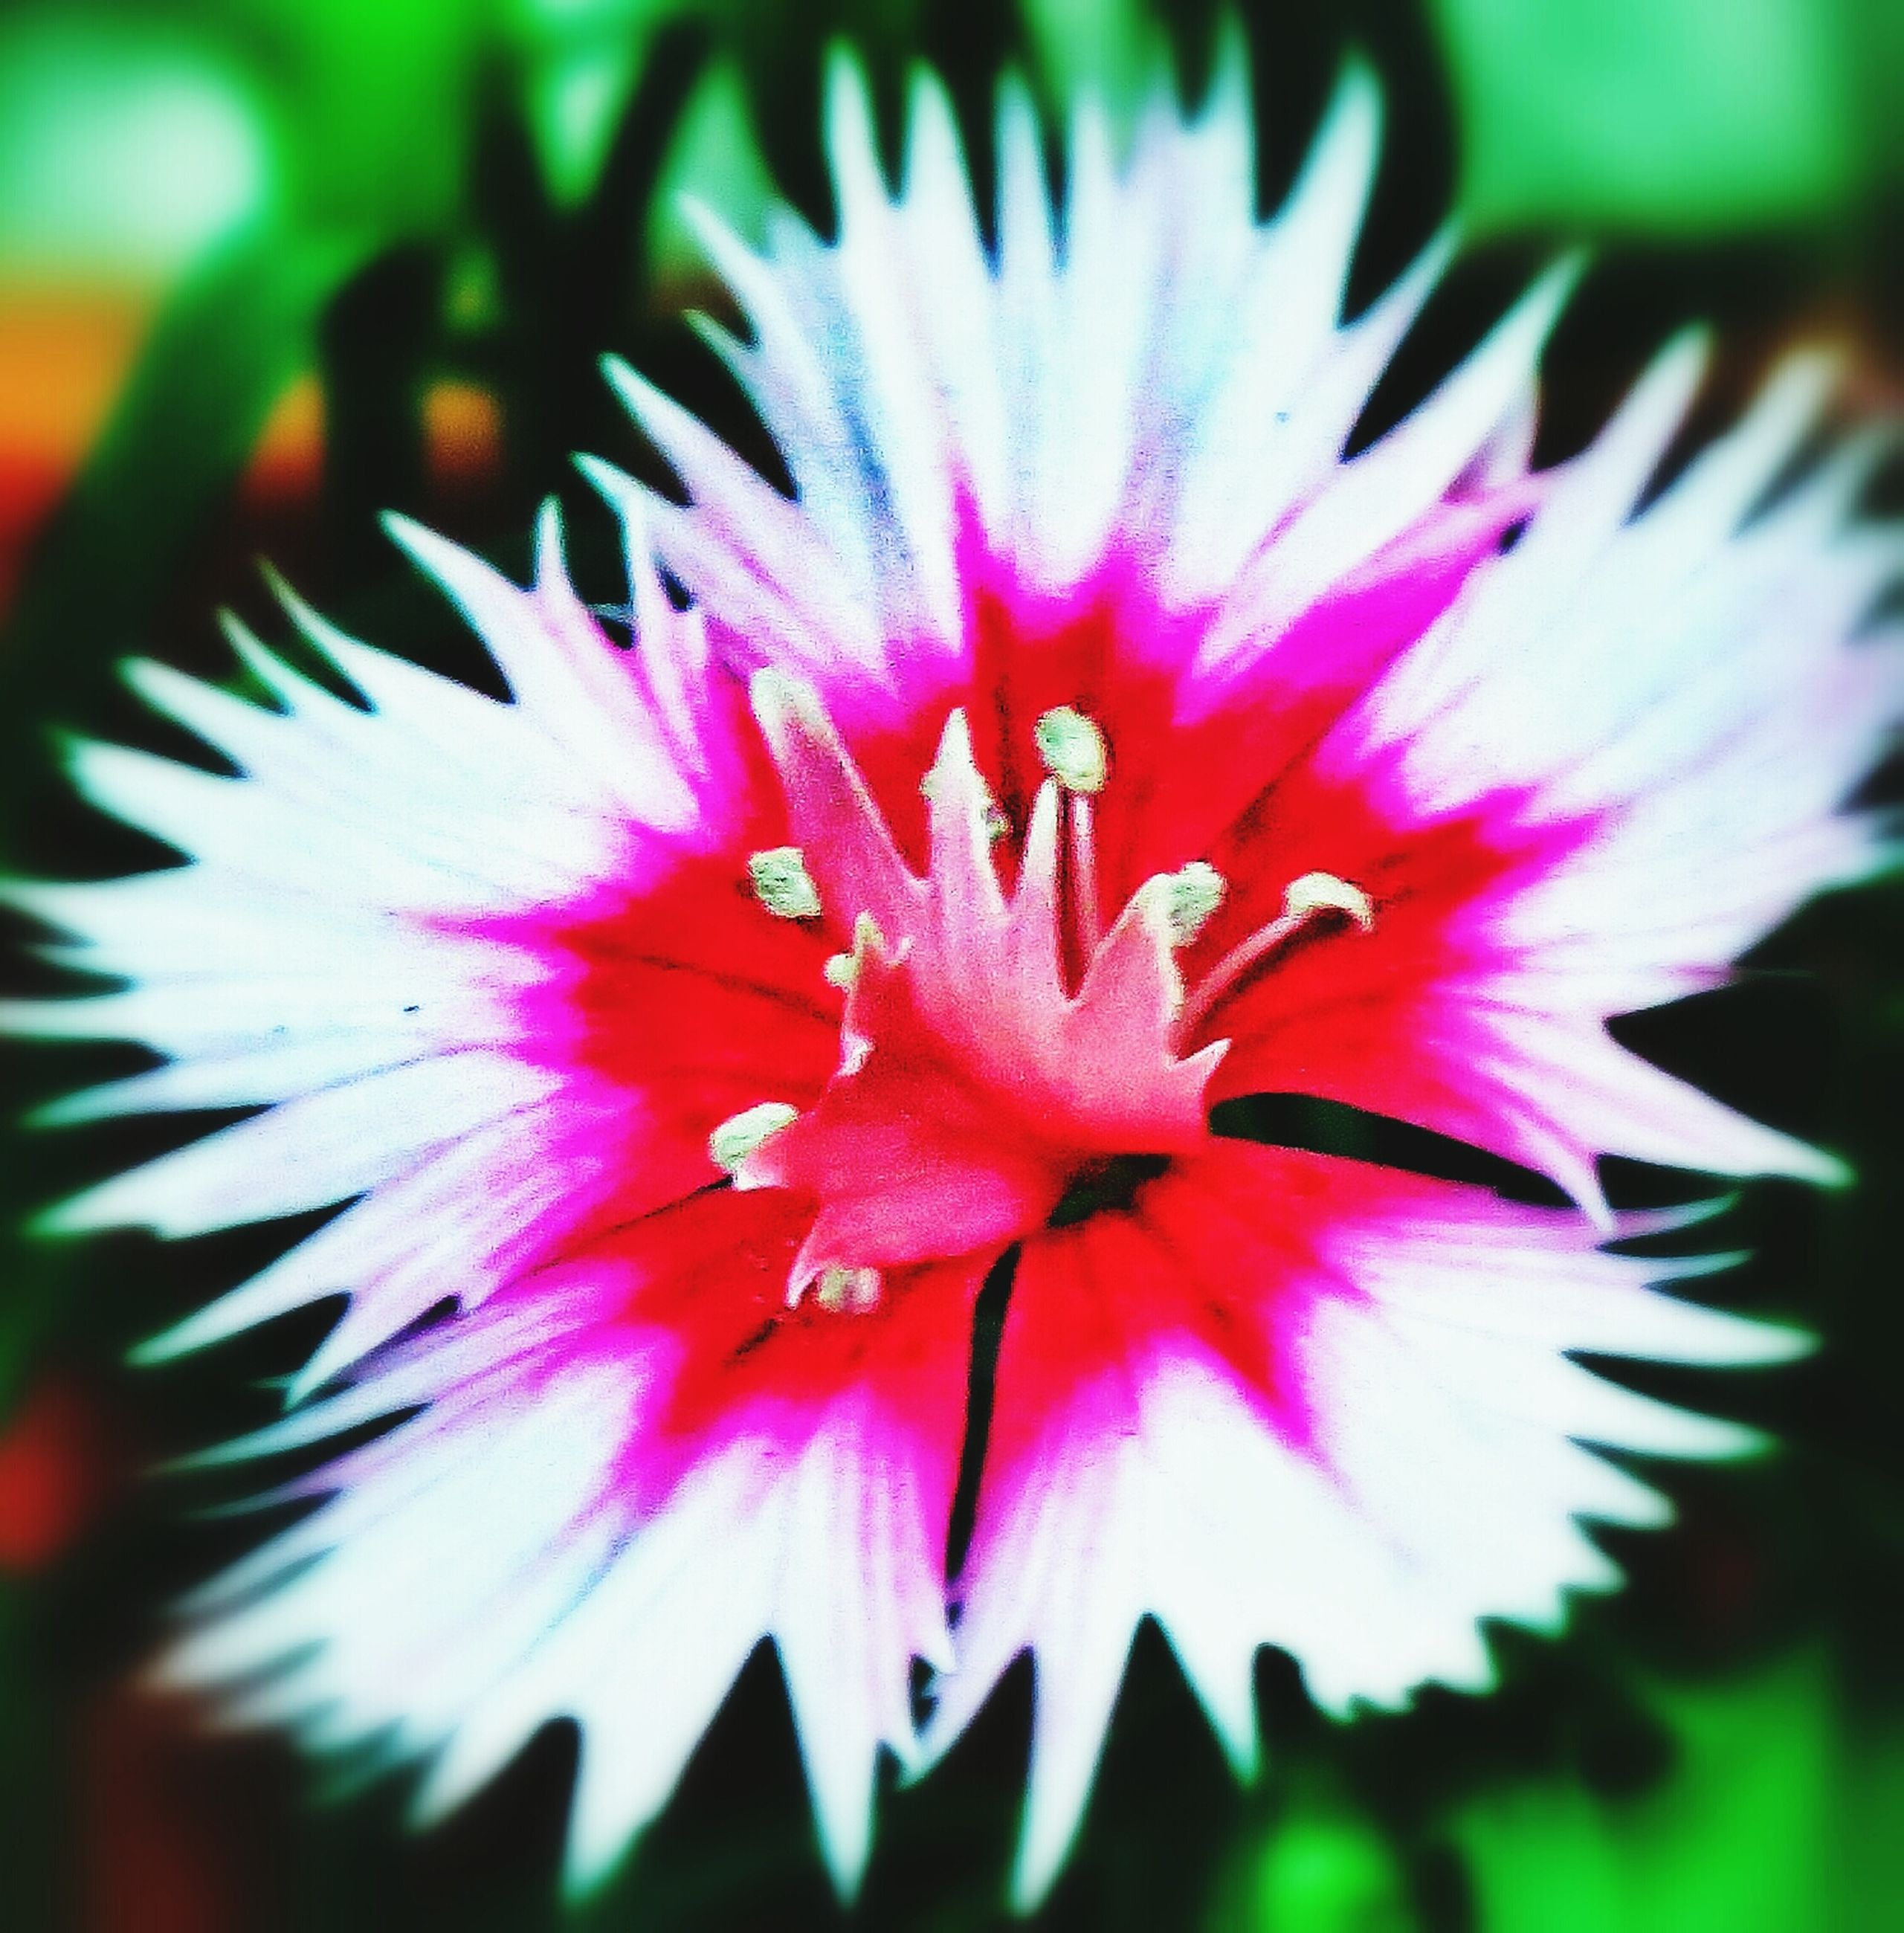 flower, petal, flower head, freshness, fragility, single flower, close-up, growth, beauty in nature, pollen, pink color, stamen, nature, blooming, focus on foreground, selective focus, plant, in bloom, no people, outdoors